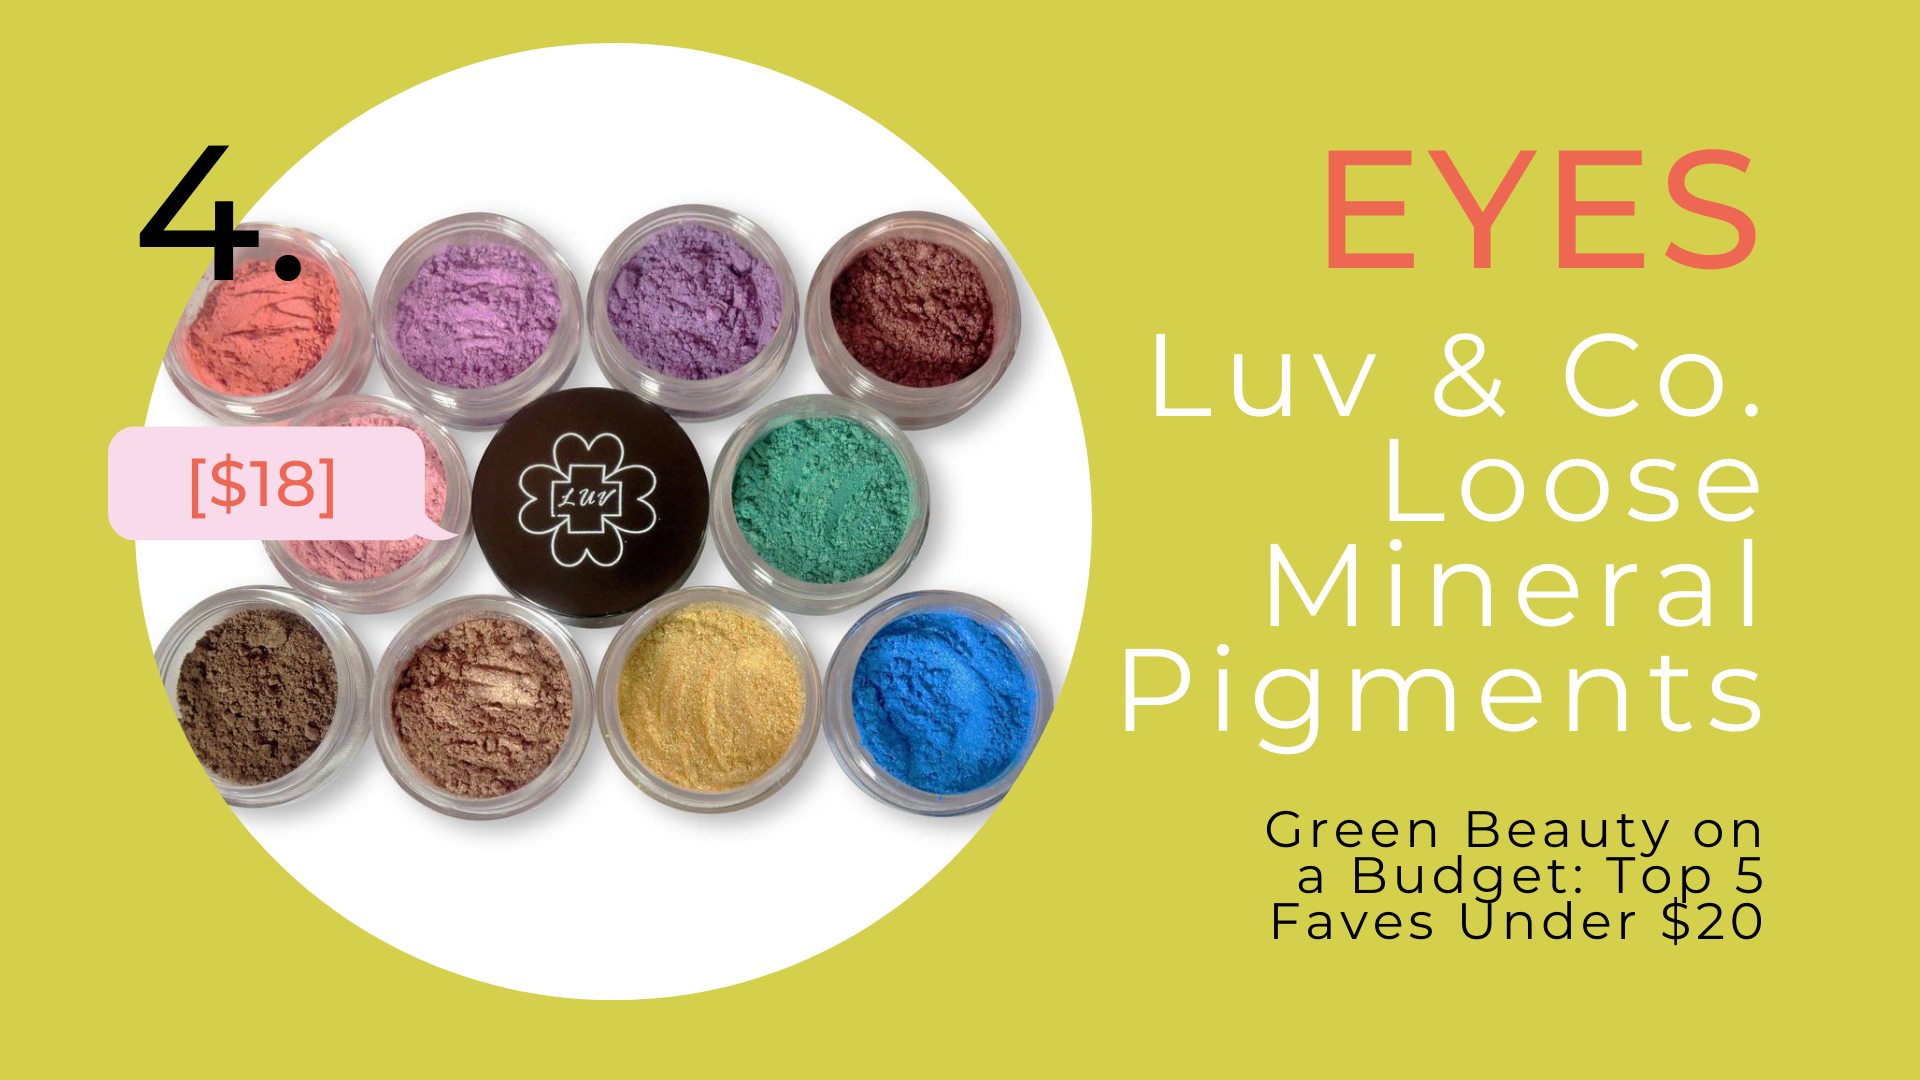 Shop Luv & Company Loose Mineral Pigments